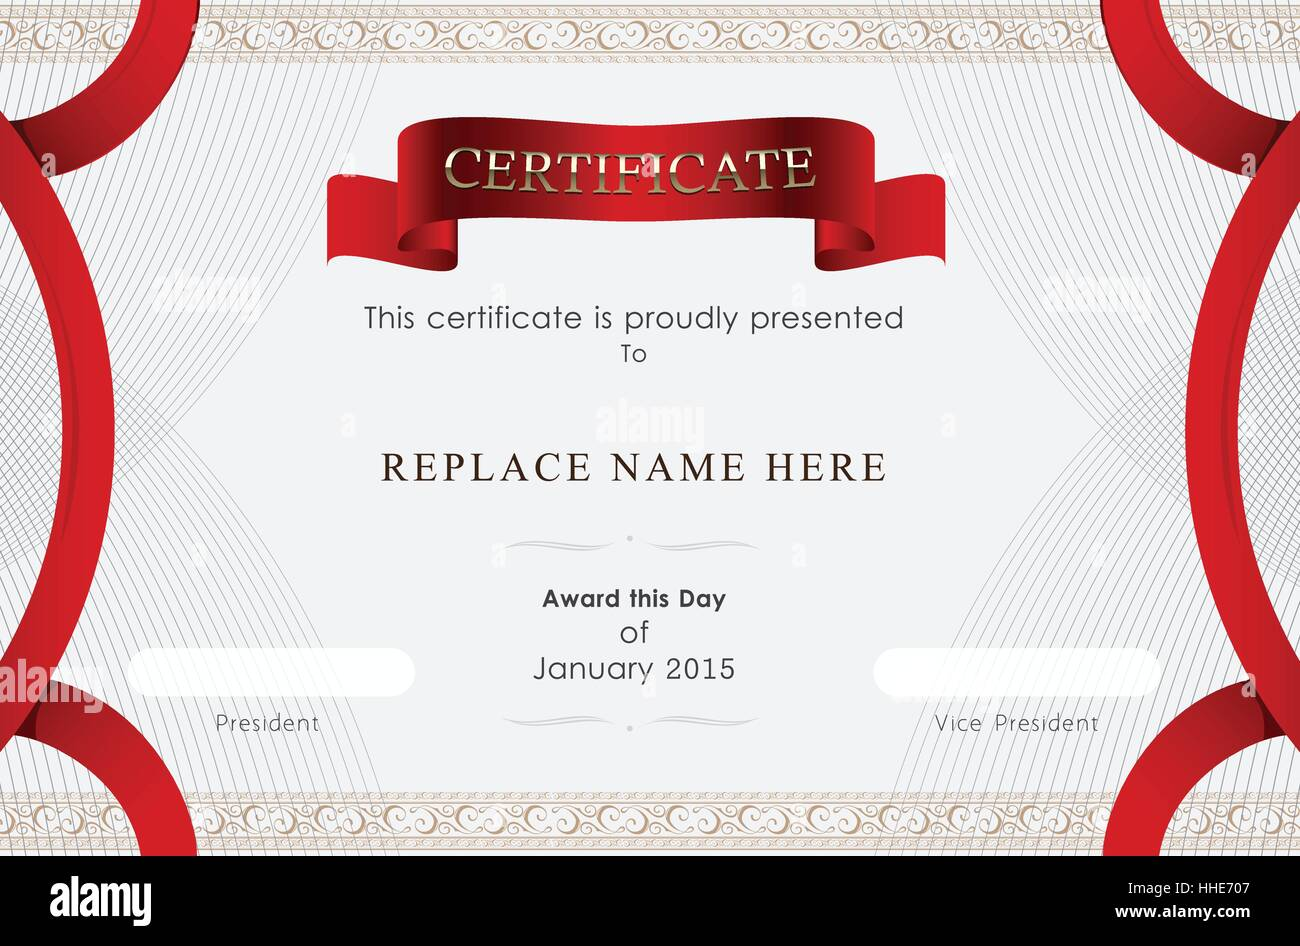 Certificate border certificate template vector illustration certificate border certificate template vector illustration xflitez Gallery